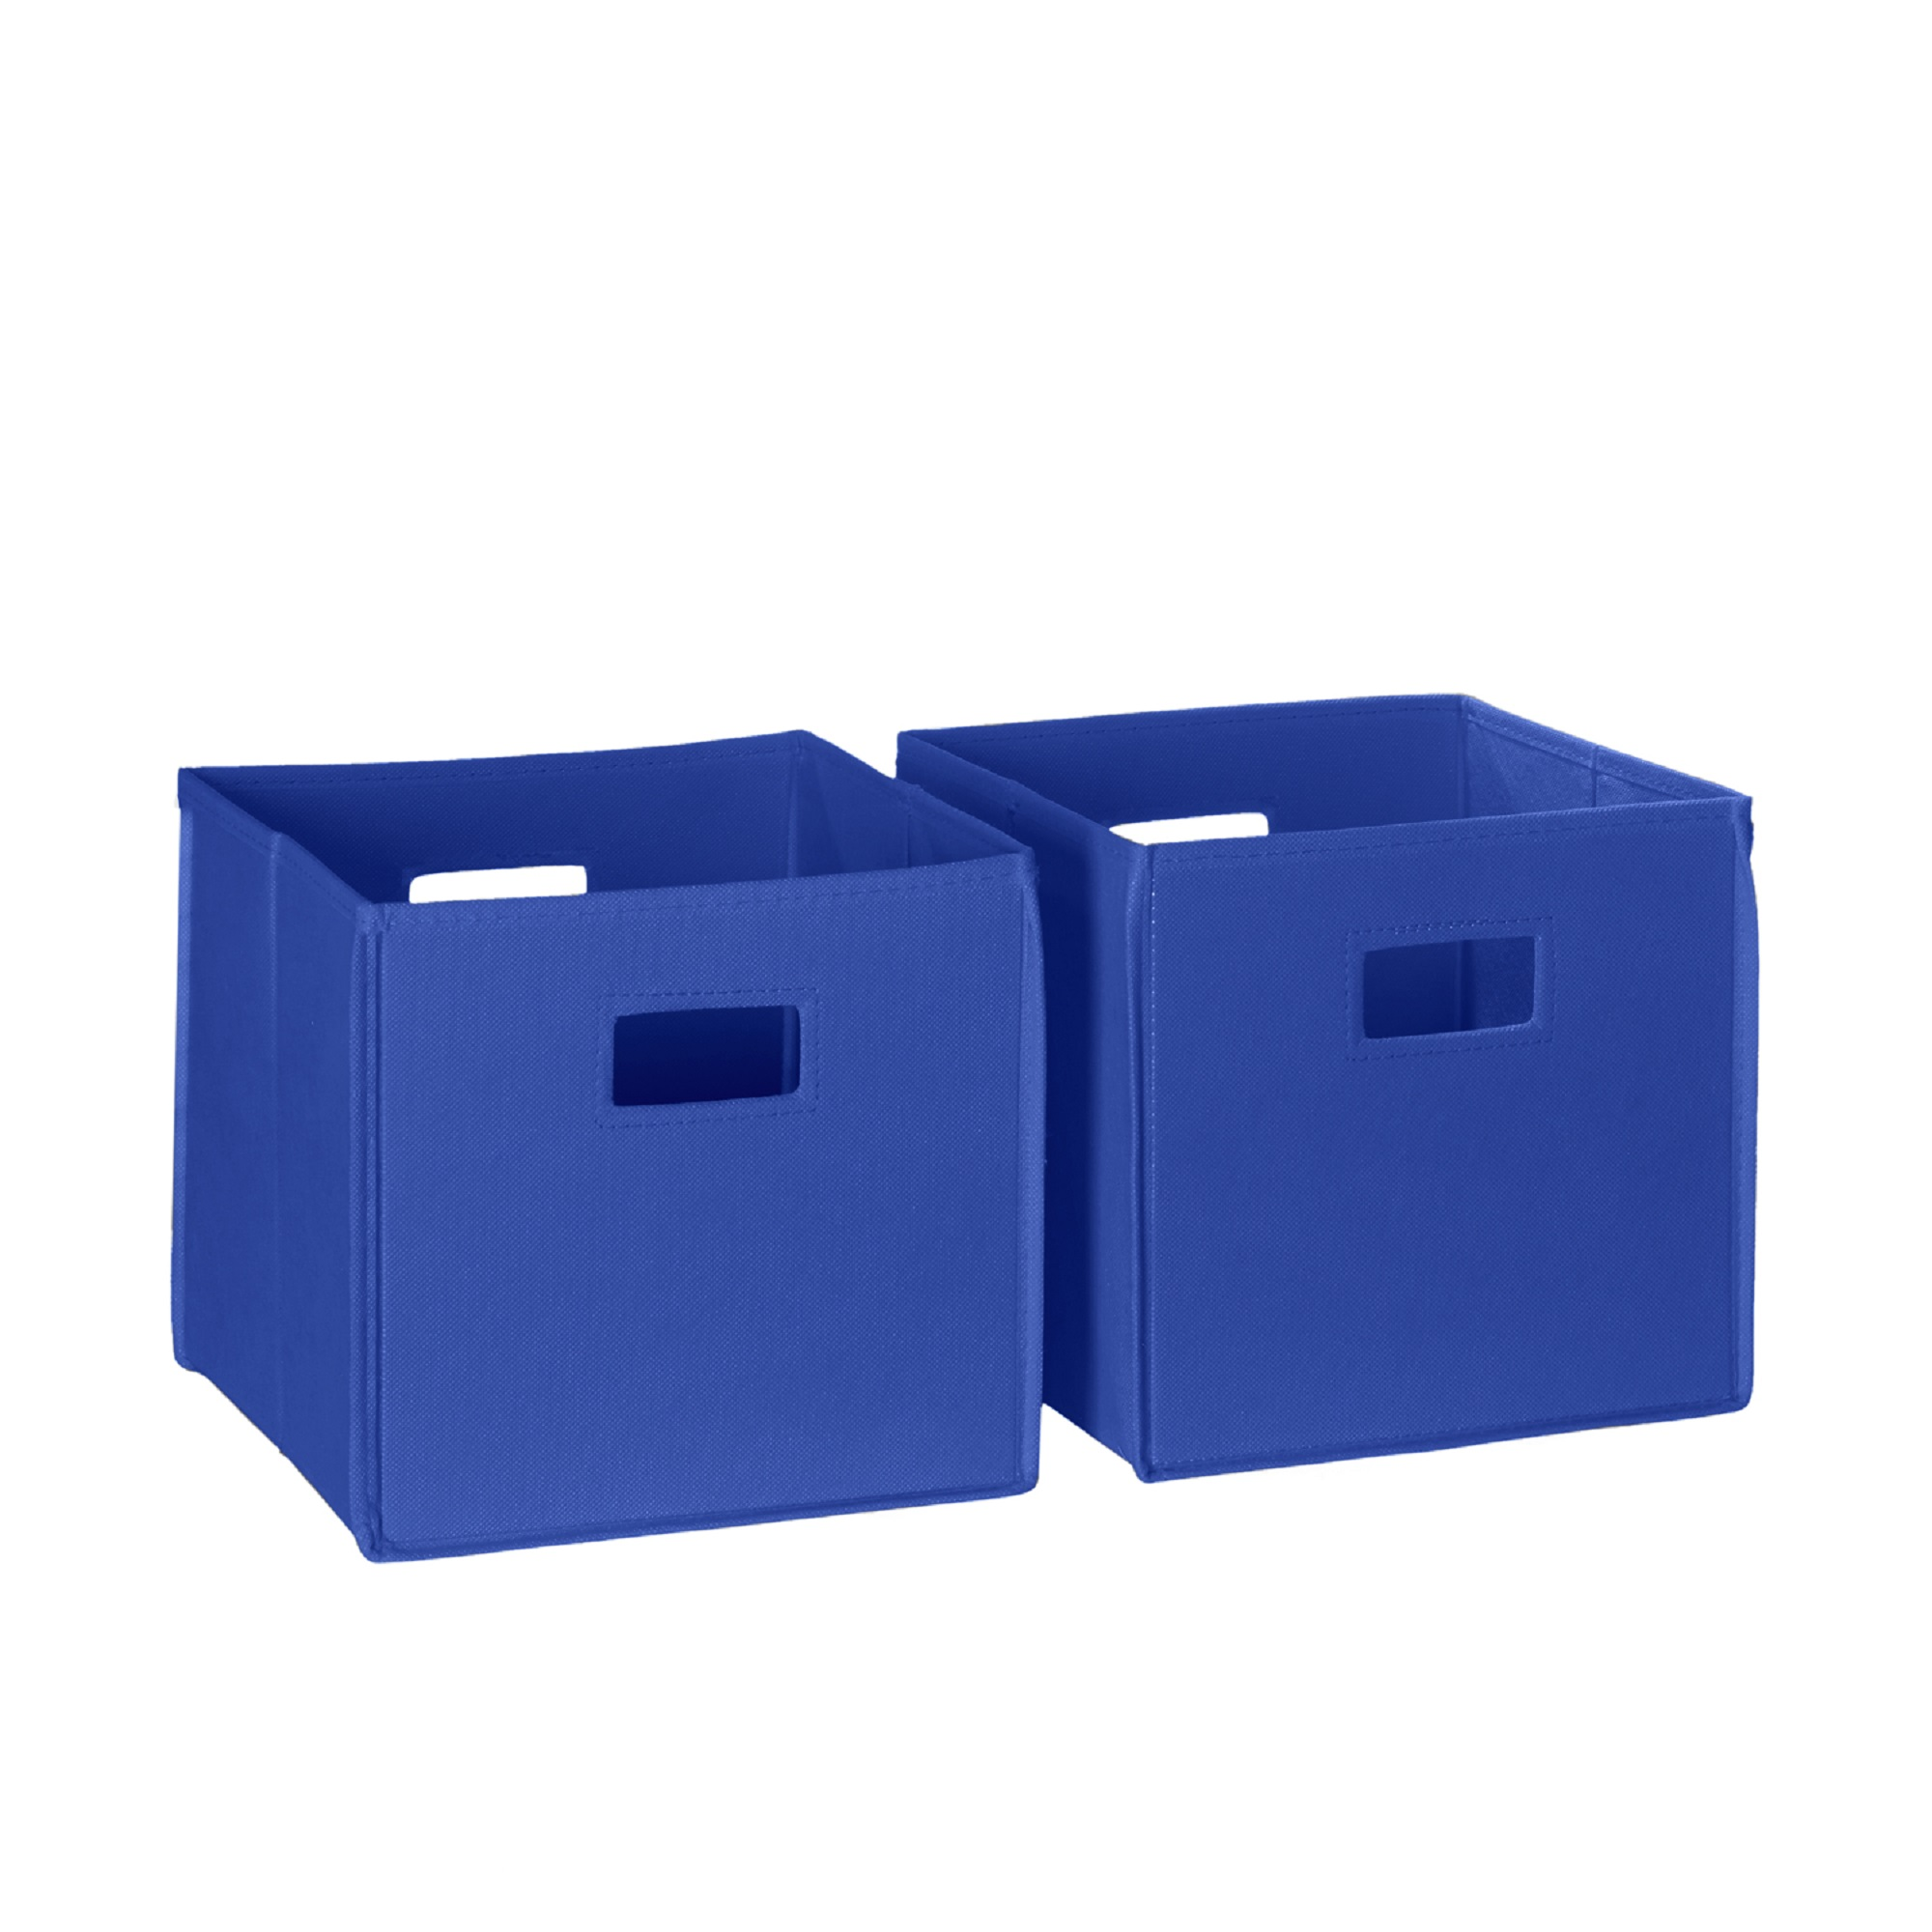 RiverRidge Kids 2 Pc Folding Storage Bin Set Red by Sourcing Solutions, Inc.